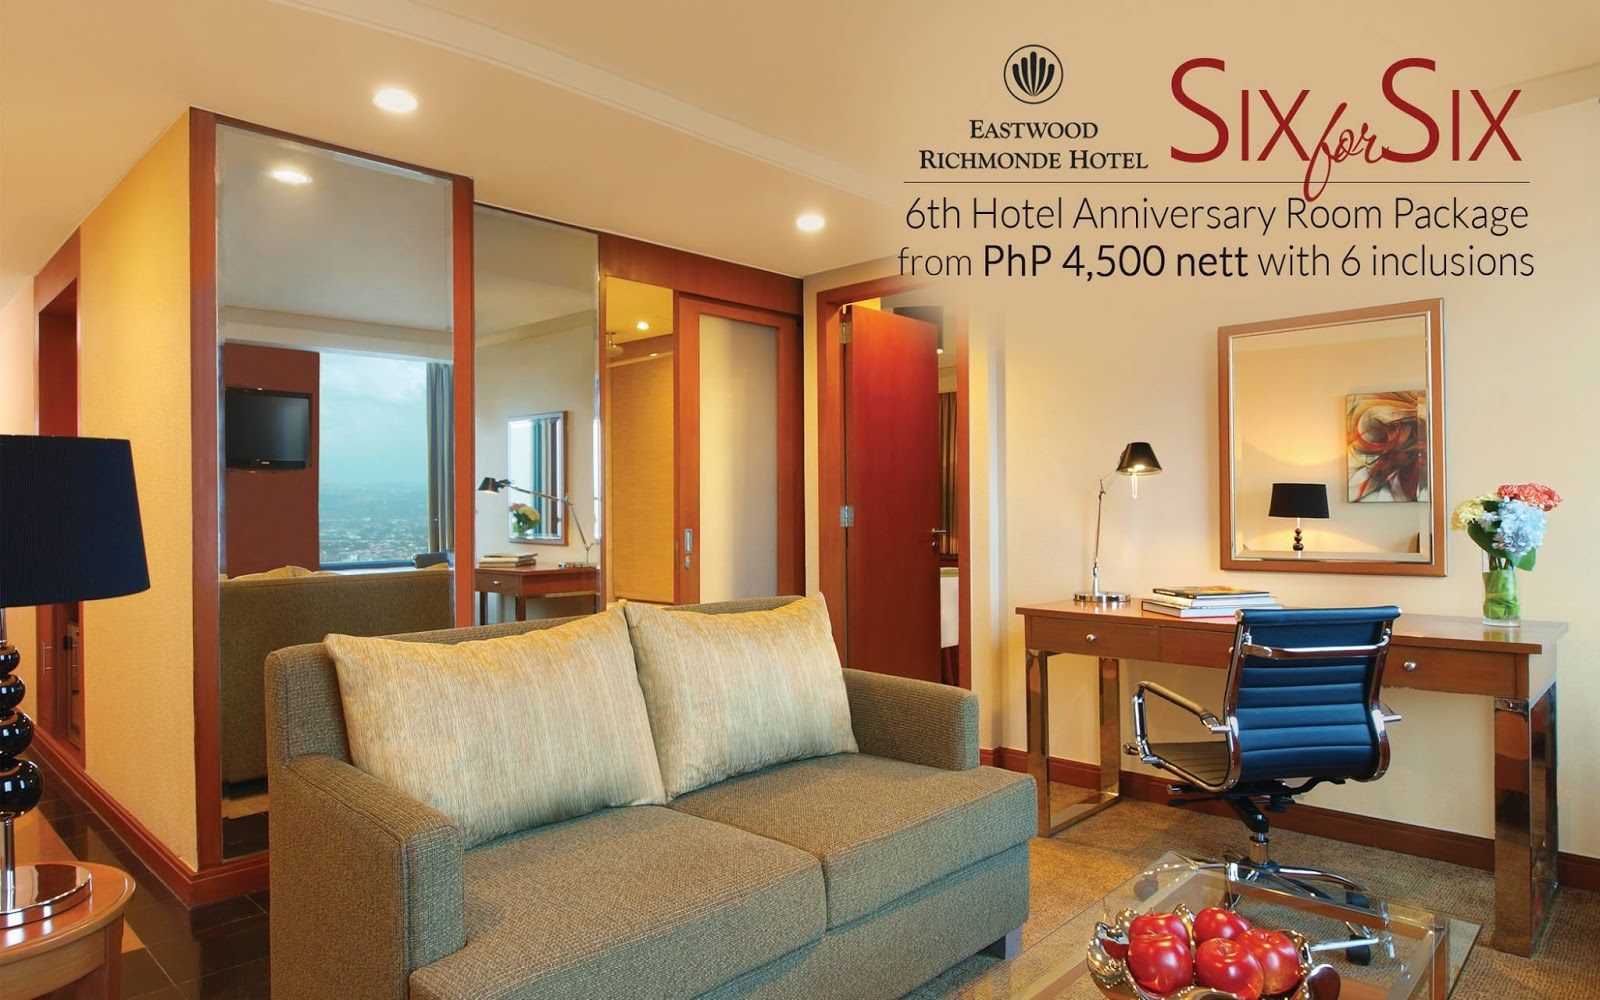 Manila shopper eastwood richmond hotel 6 for 6 anniversary promo november to december 2016 for 2 bedroom suites in richmond va